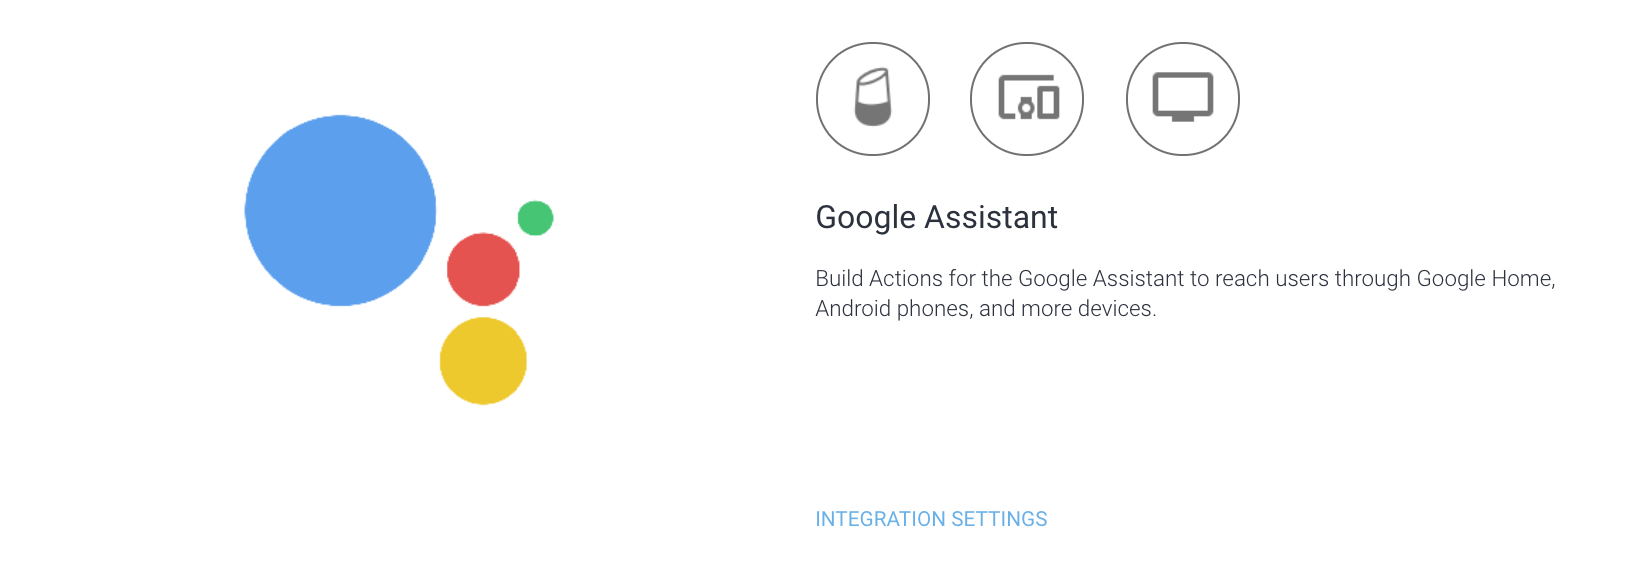 Hands-on with Dialogflow & Google Assistant: Writing your